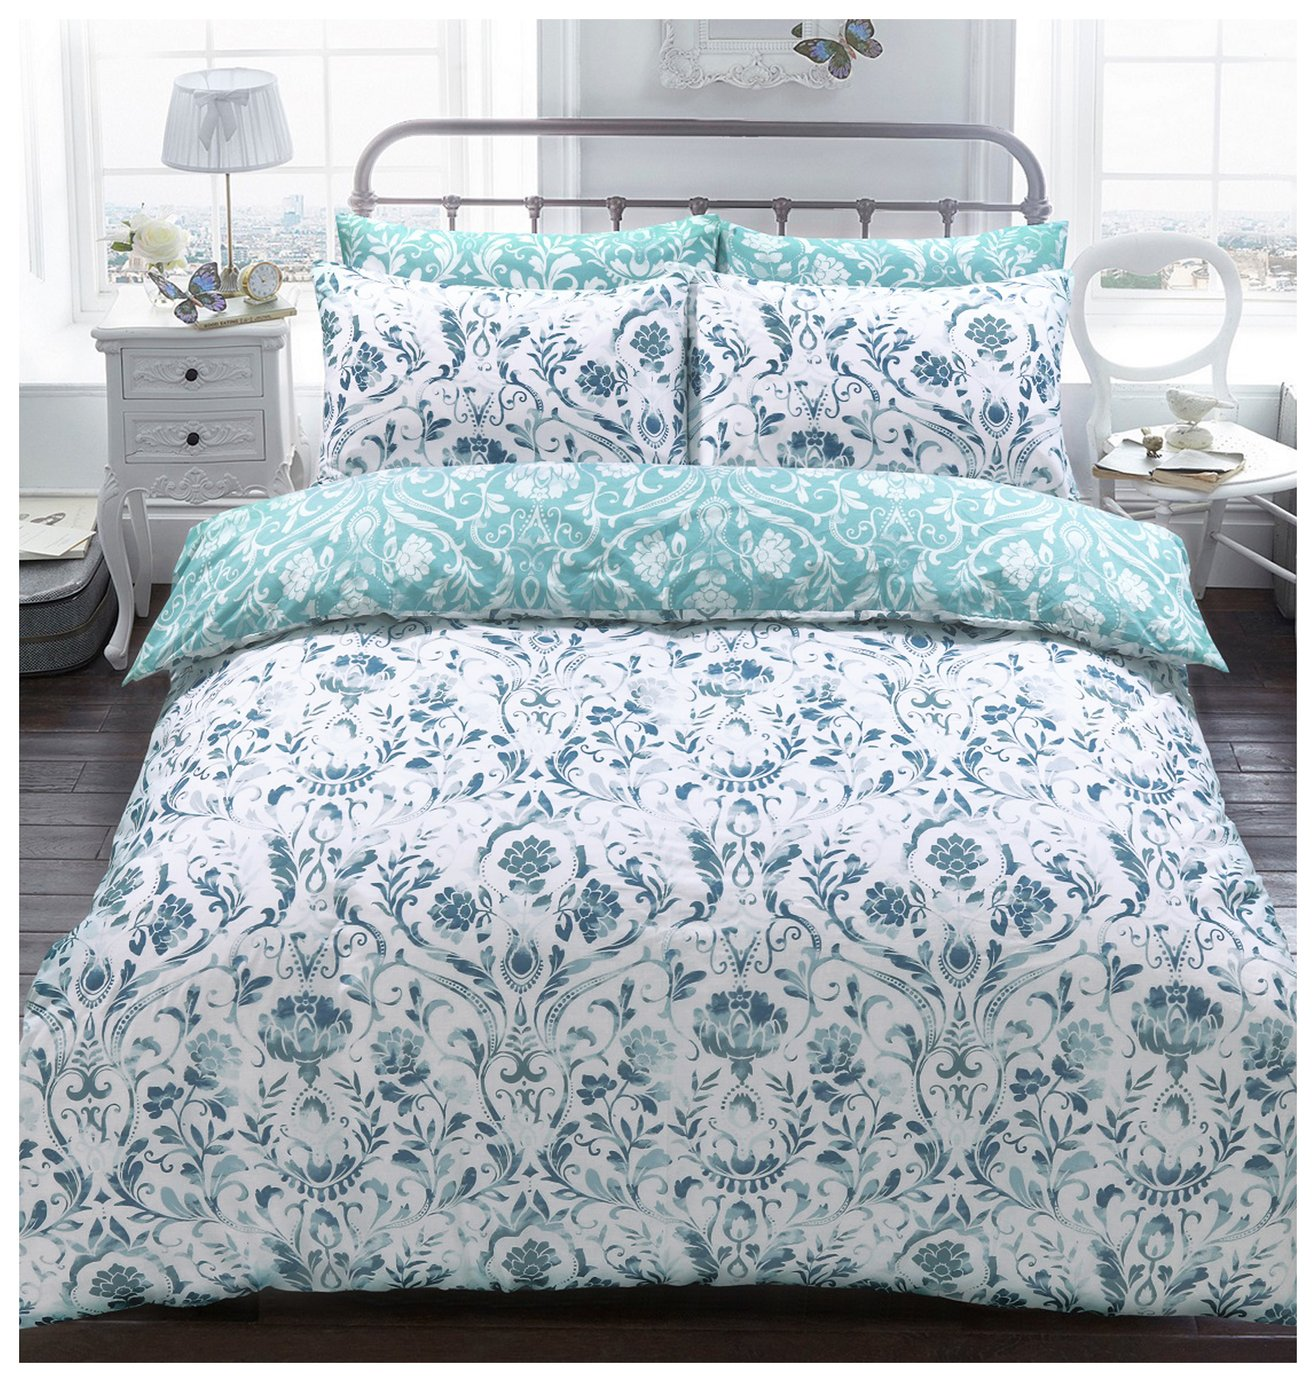 Argos Home Teal Painted Damask Bedding Set - Single